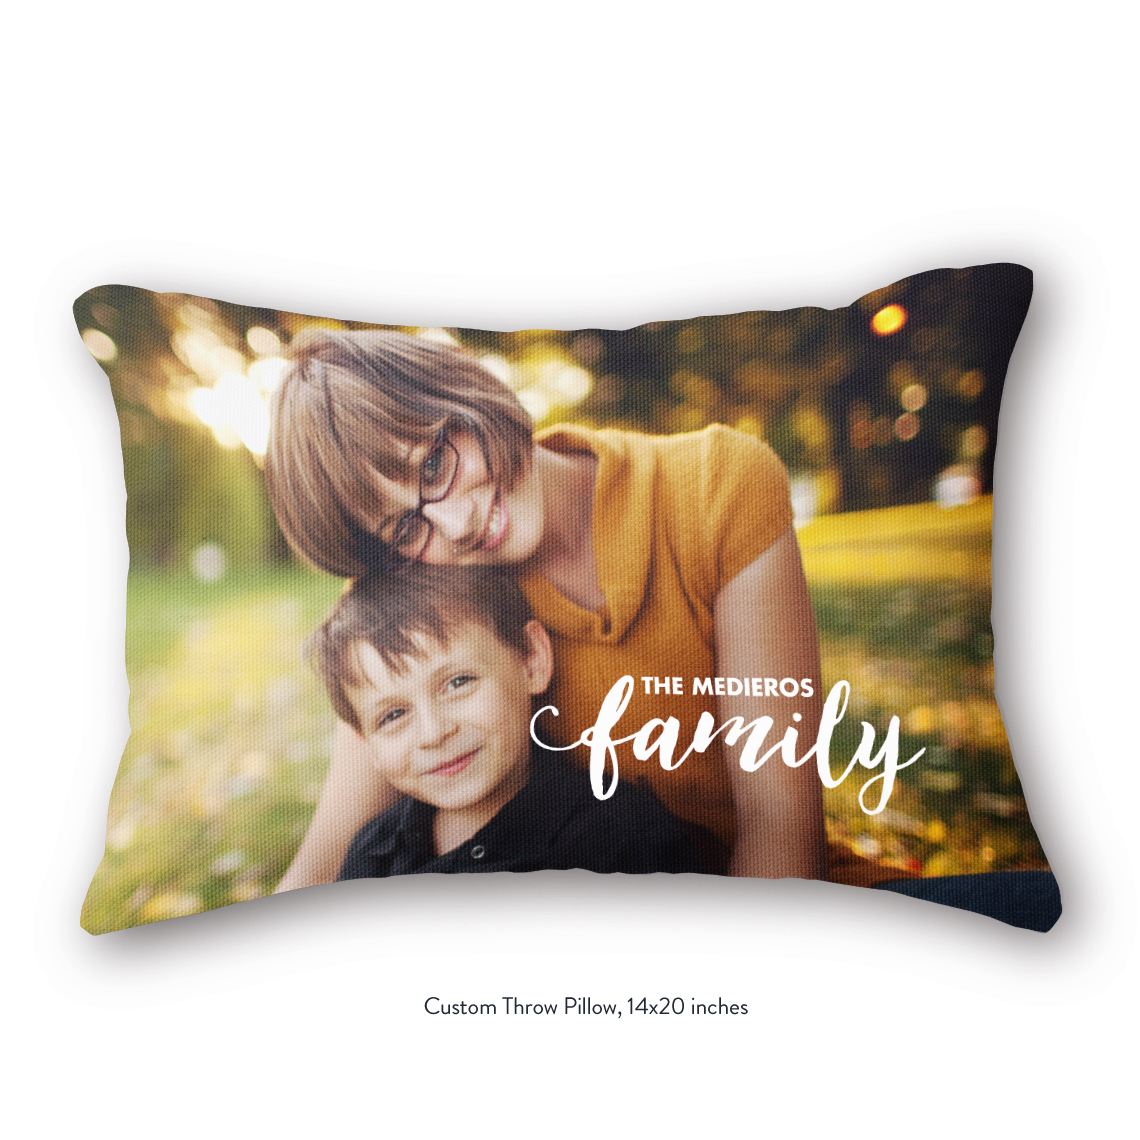 Enthralling Custom Throw Pillow Custom Throw Custom Throw Pillows Blankets Custom Outdoor Throw Pillows Custom Throw Pillows Uk custom Custom Throw Pillows